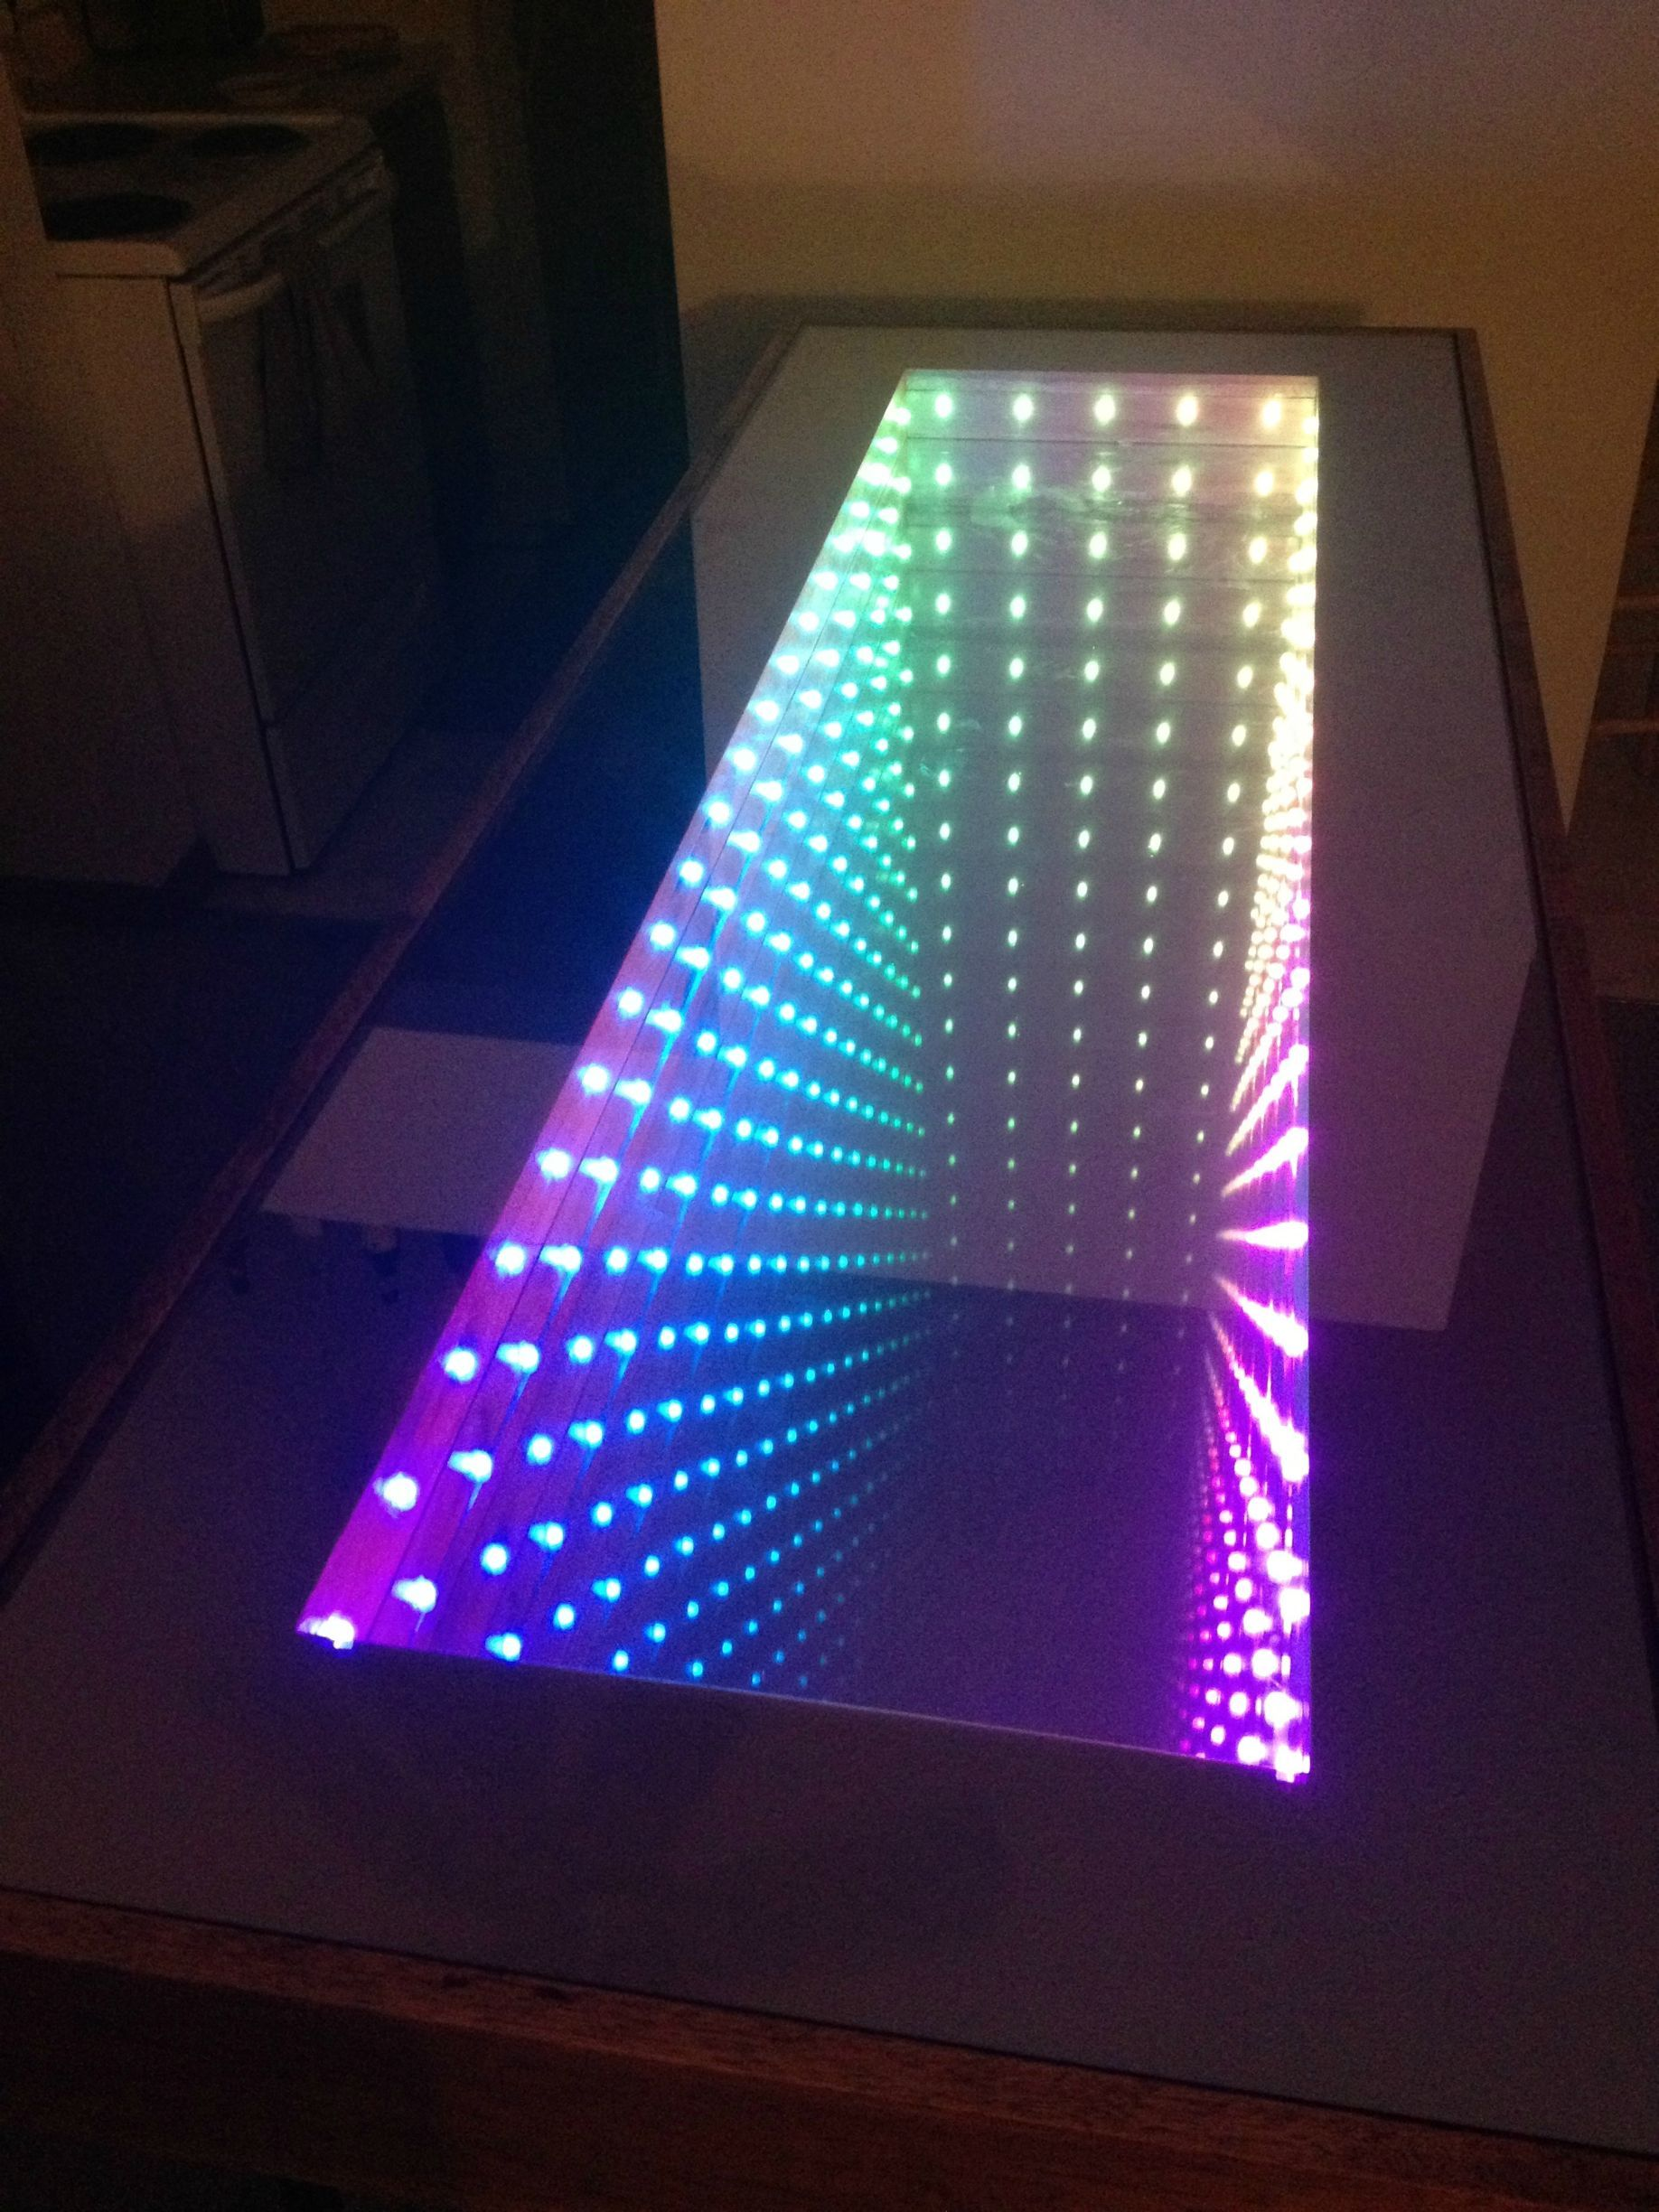 Pin By Marvel Delgado On What S Fresh Infinity Table Infinity Mirror Mirror Table